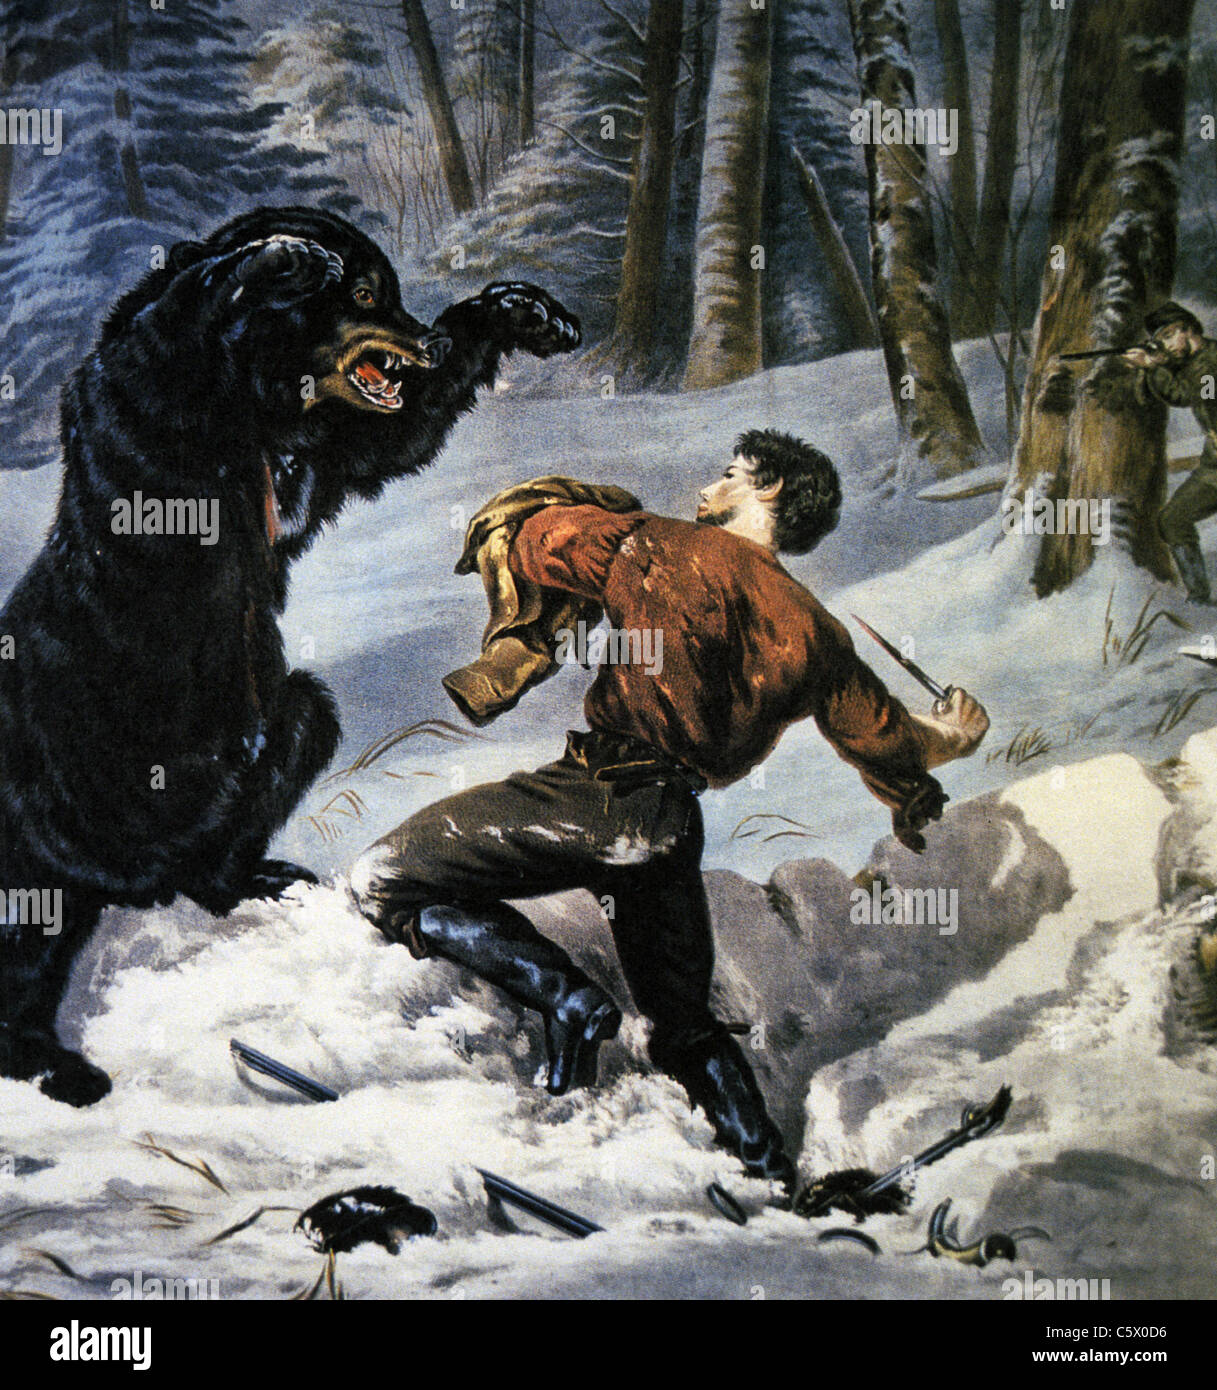 JEDEDIAH SMITH (1799-1831)  US explorer, hunter and writer in his 1824 encounter with a Grizzly Bear - Stock Image